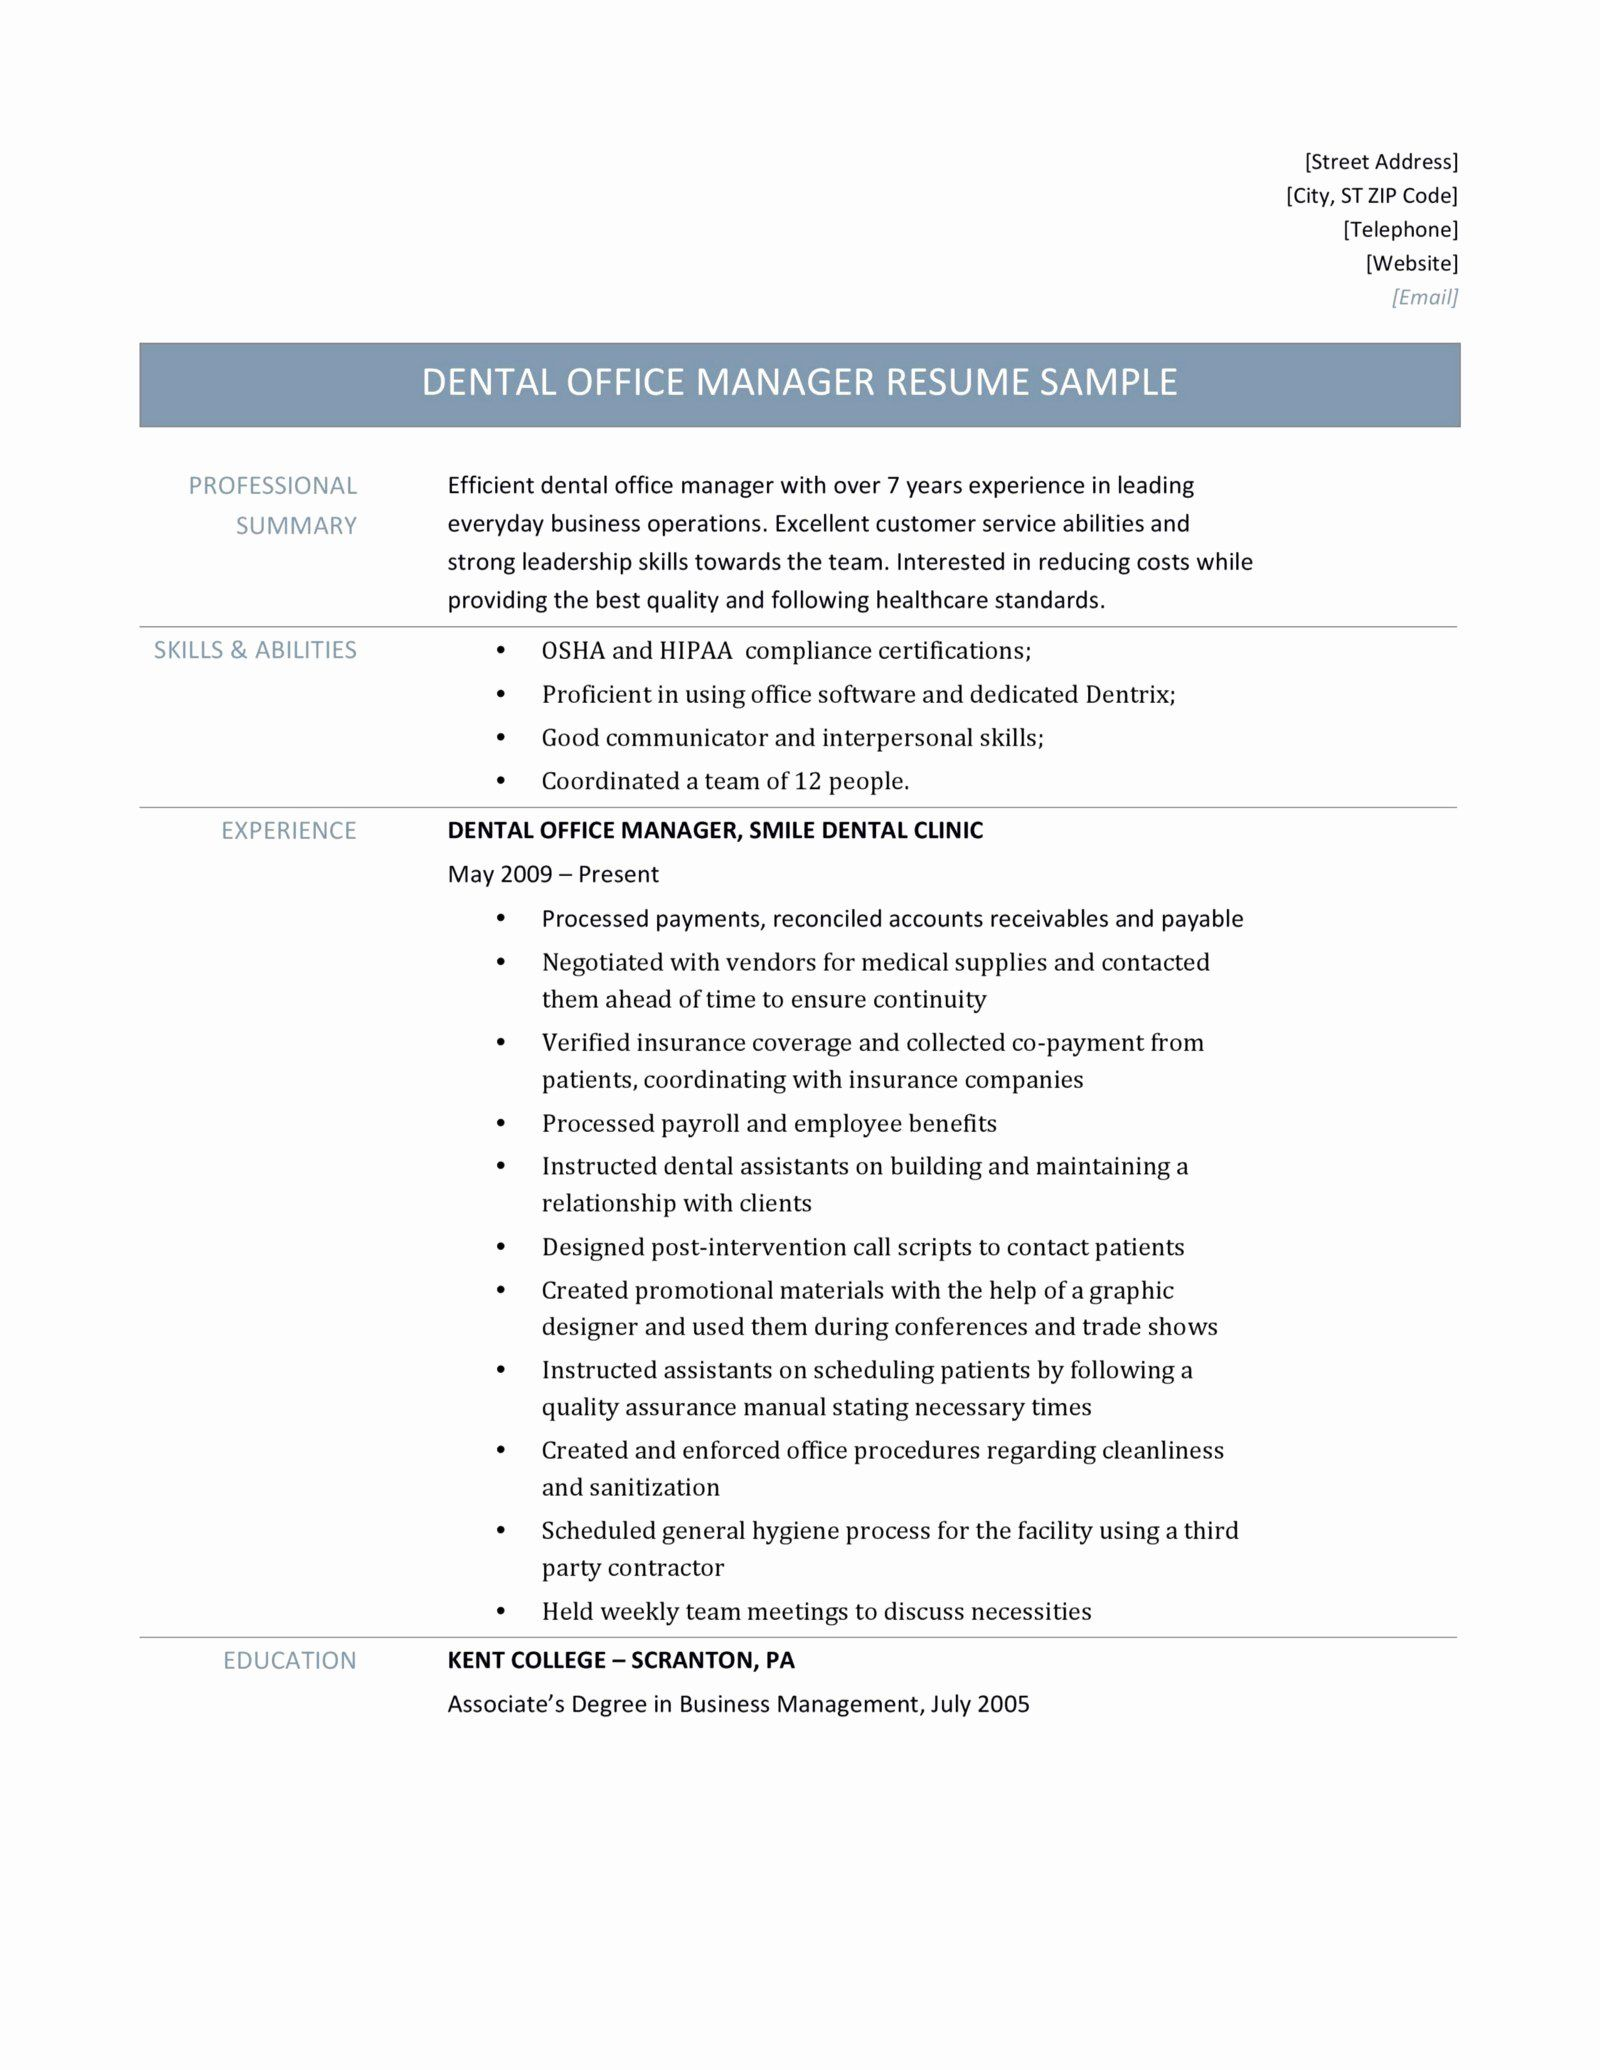 Dental Office Manager Resume Inspirational Dental Fice